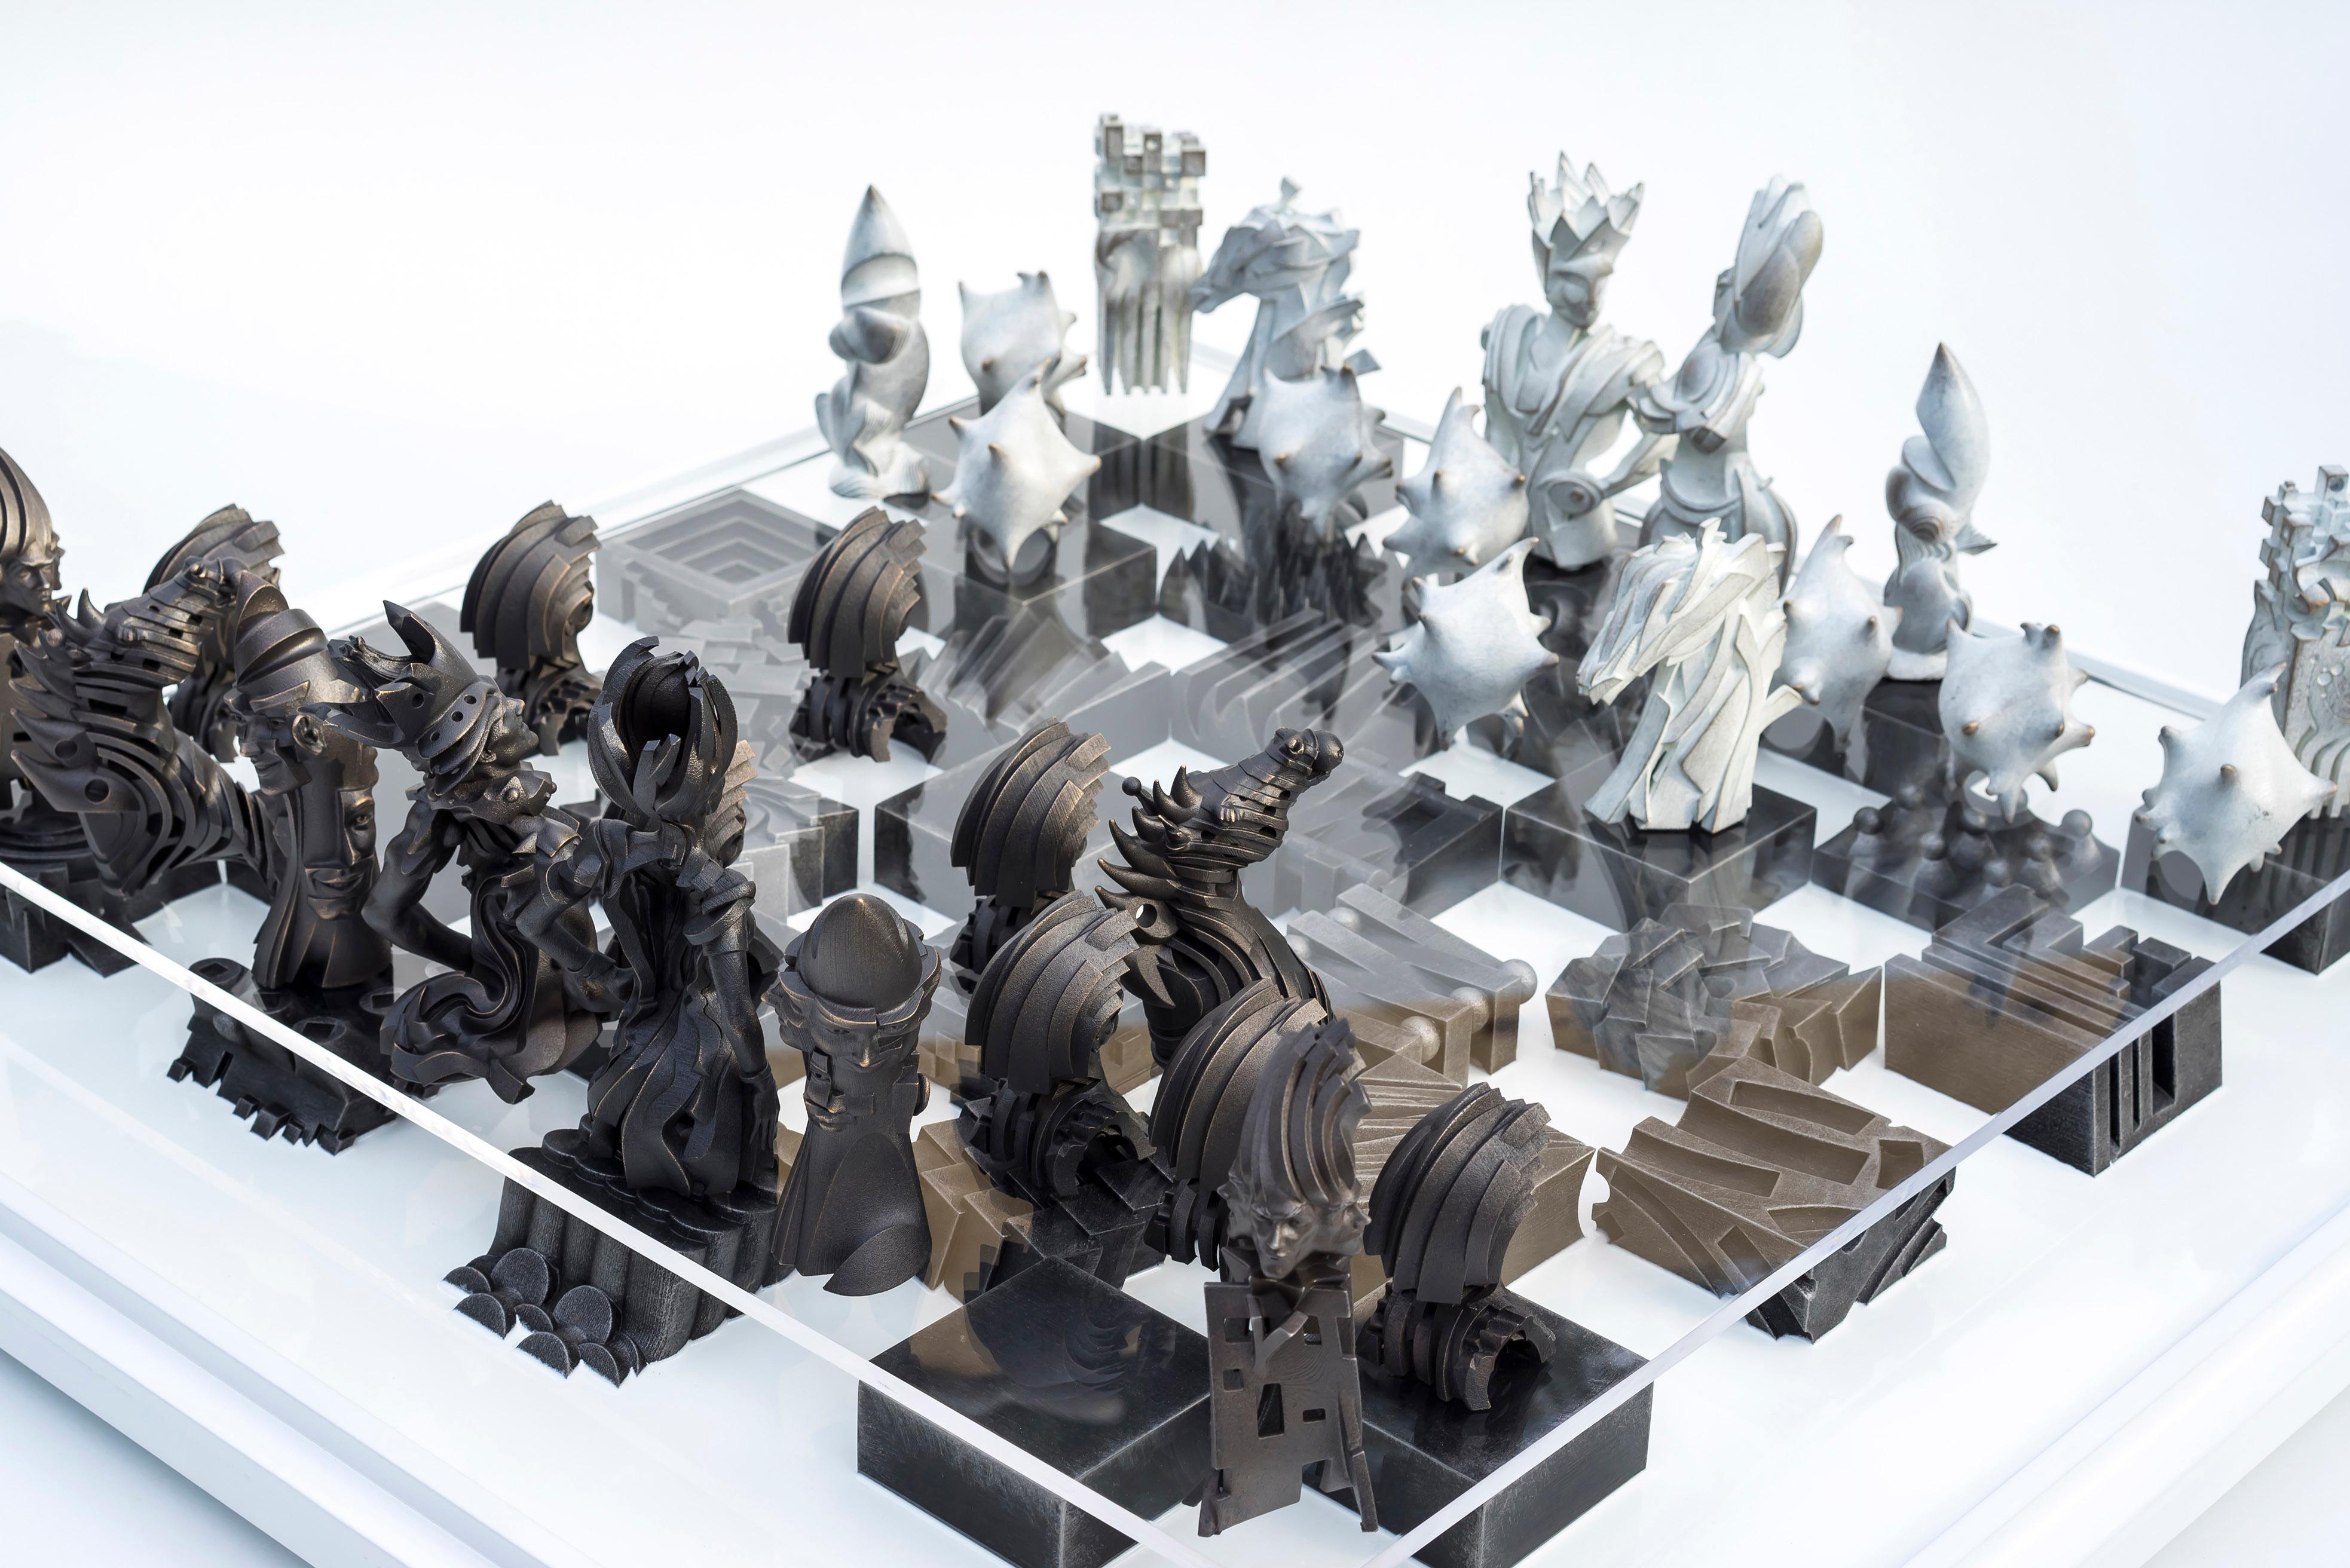 Checkmate - 21st Cent, Contemporary, Sculpture, Stainless Steel, Bronze, Wood